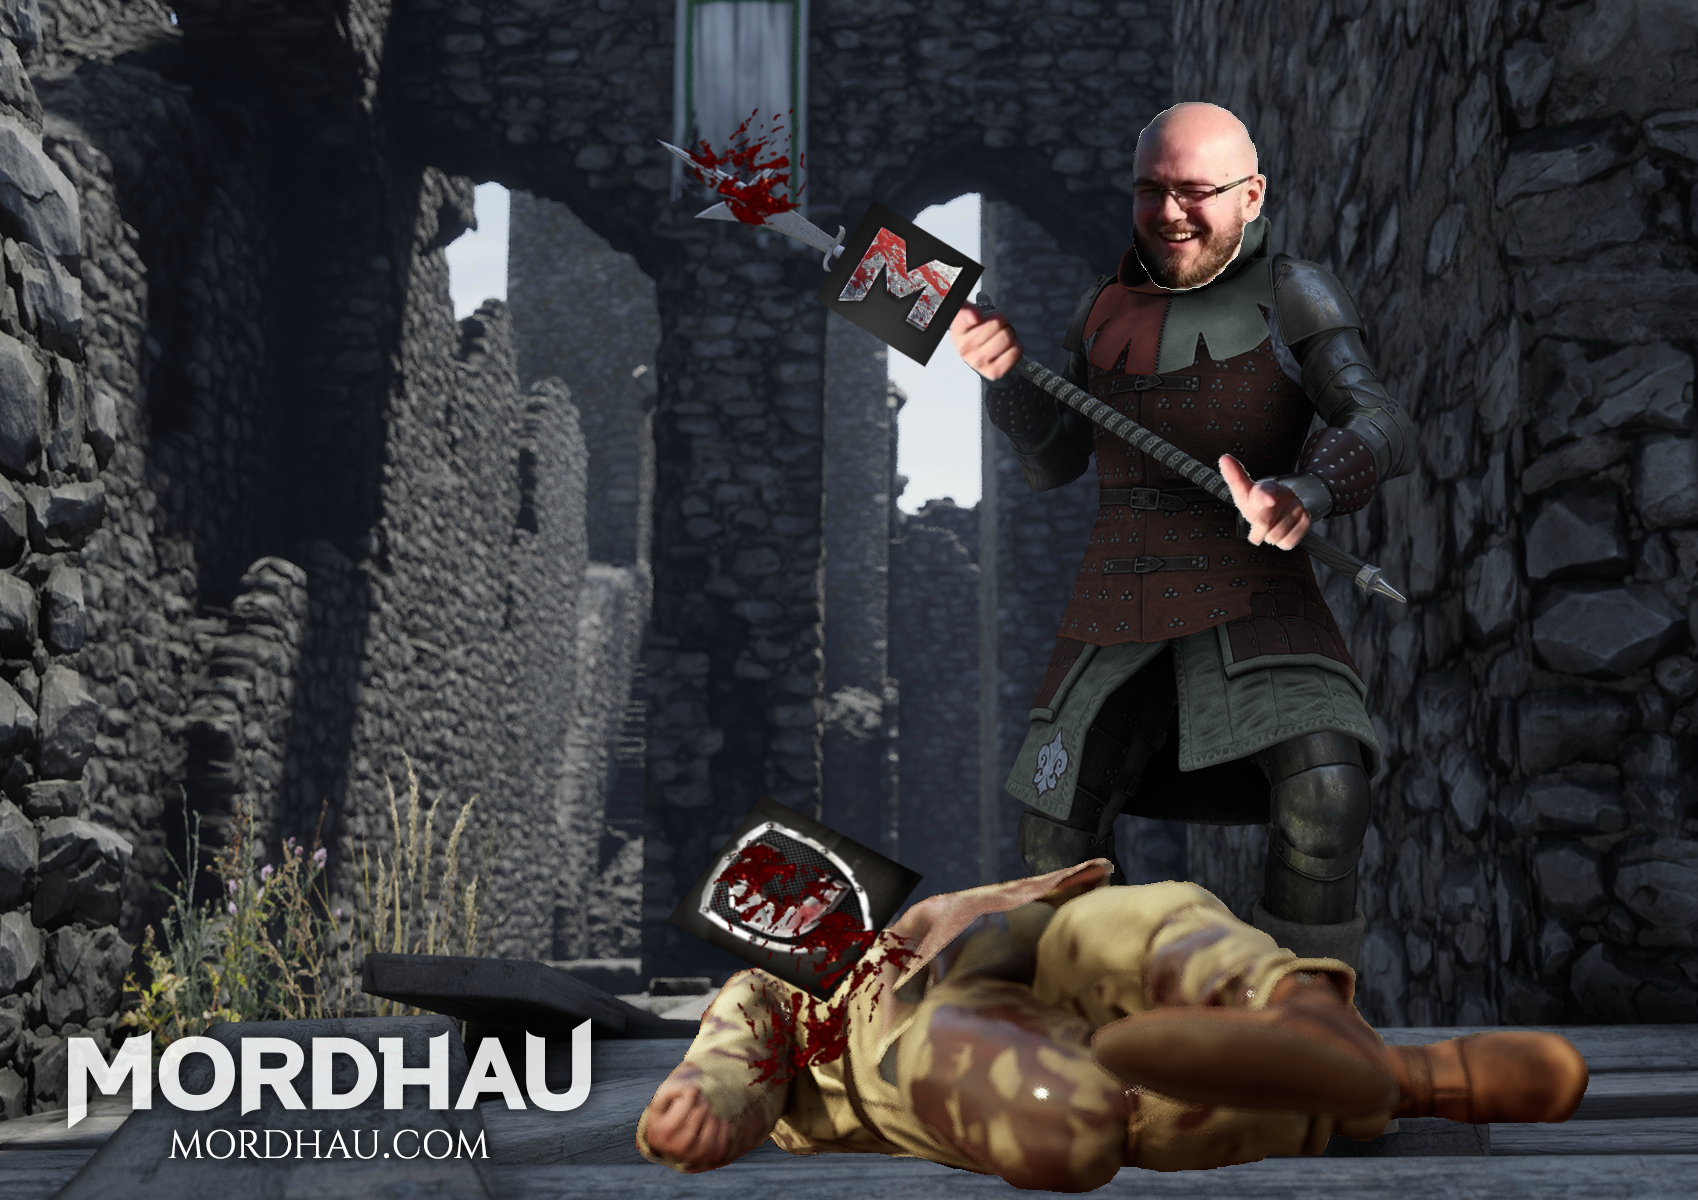 Marox stabs Chivalry to death with Mordhau Spear.png